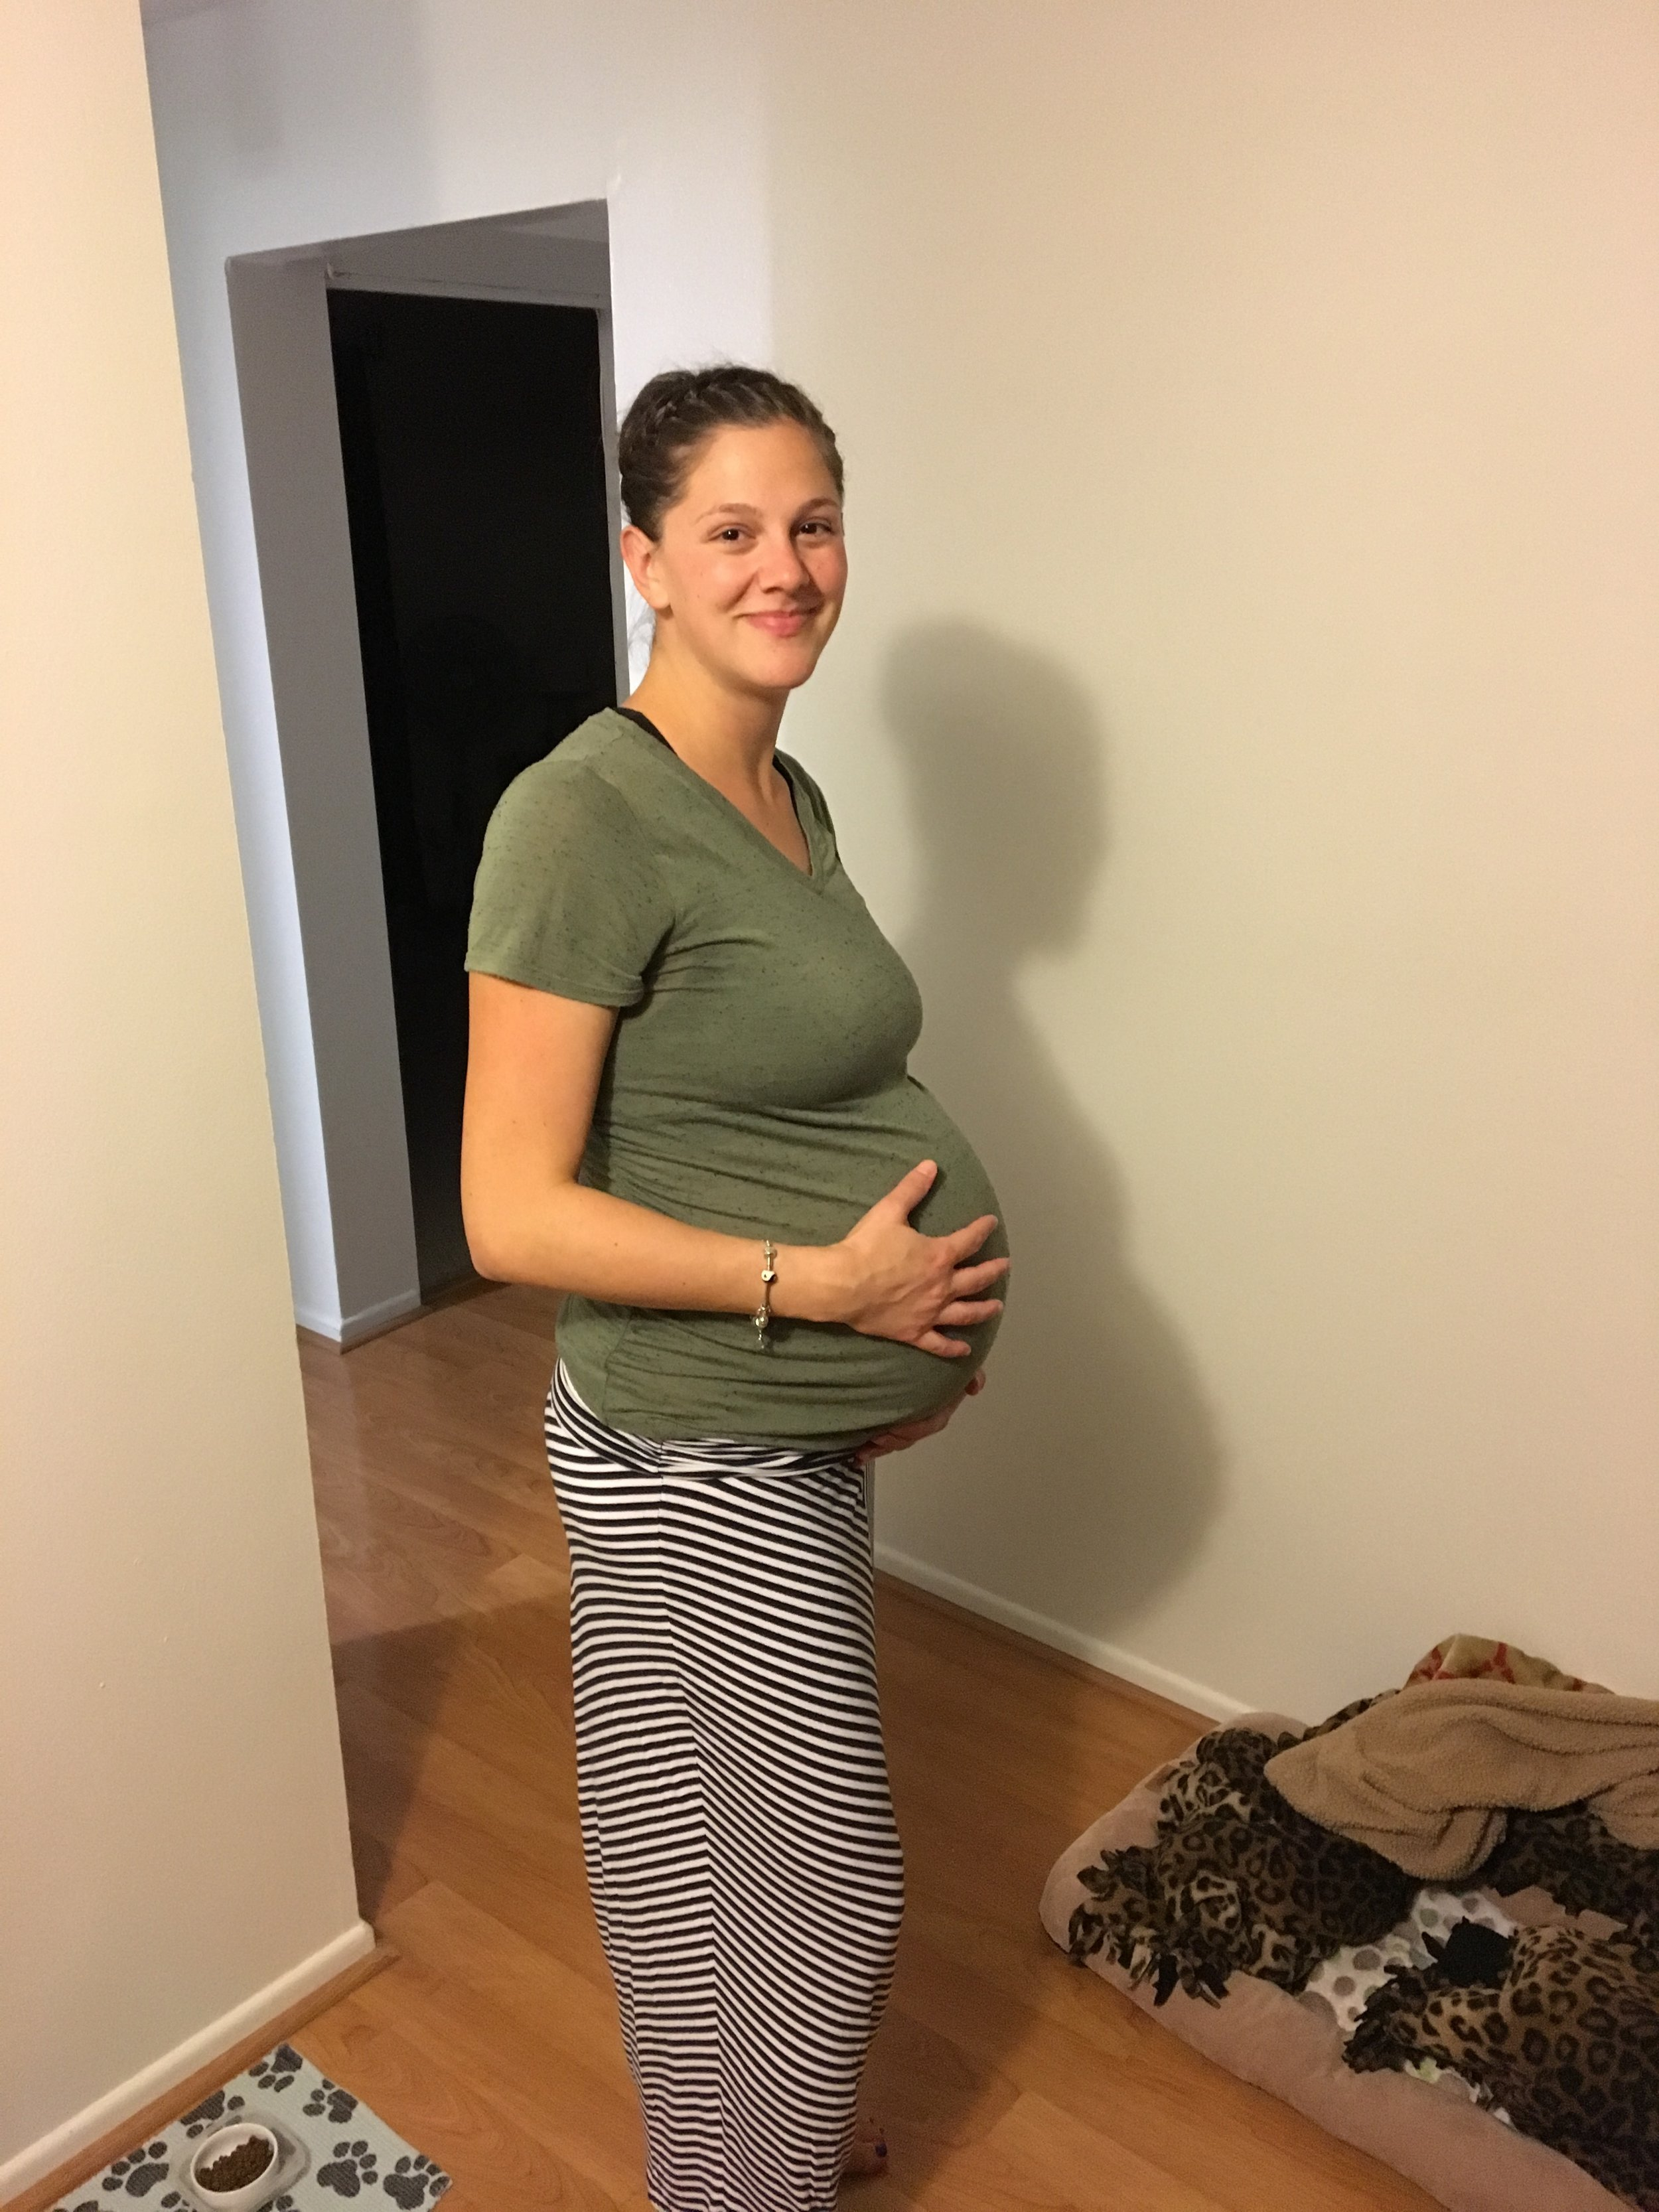 We took this picture right before we left for Castle. My last bump picture at 40+5.